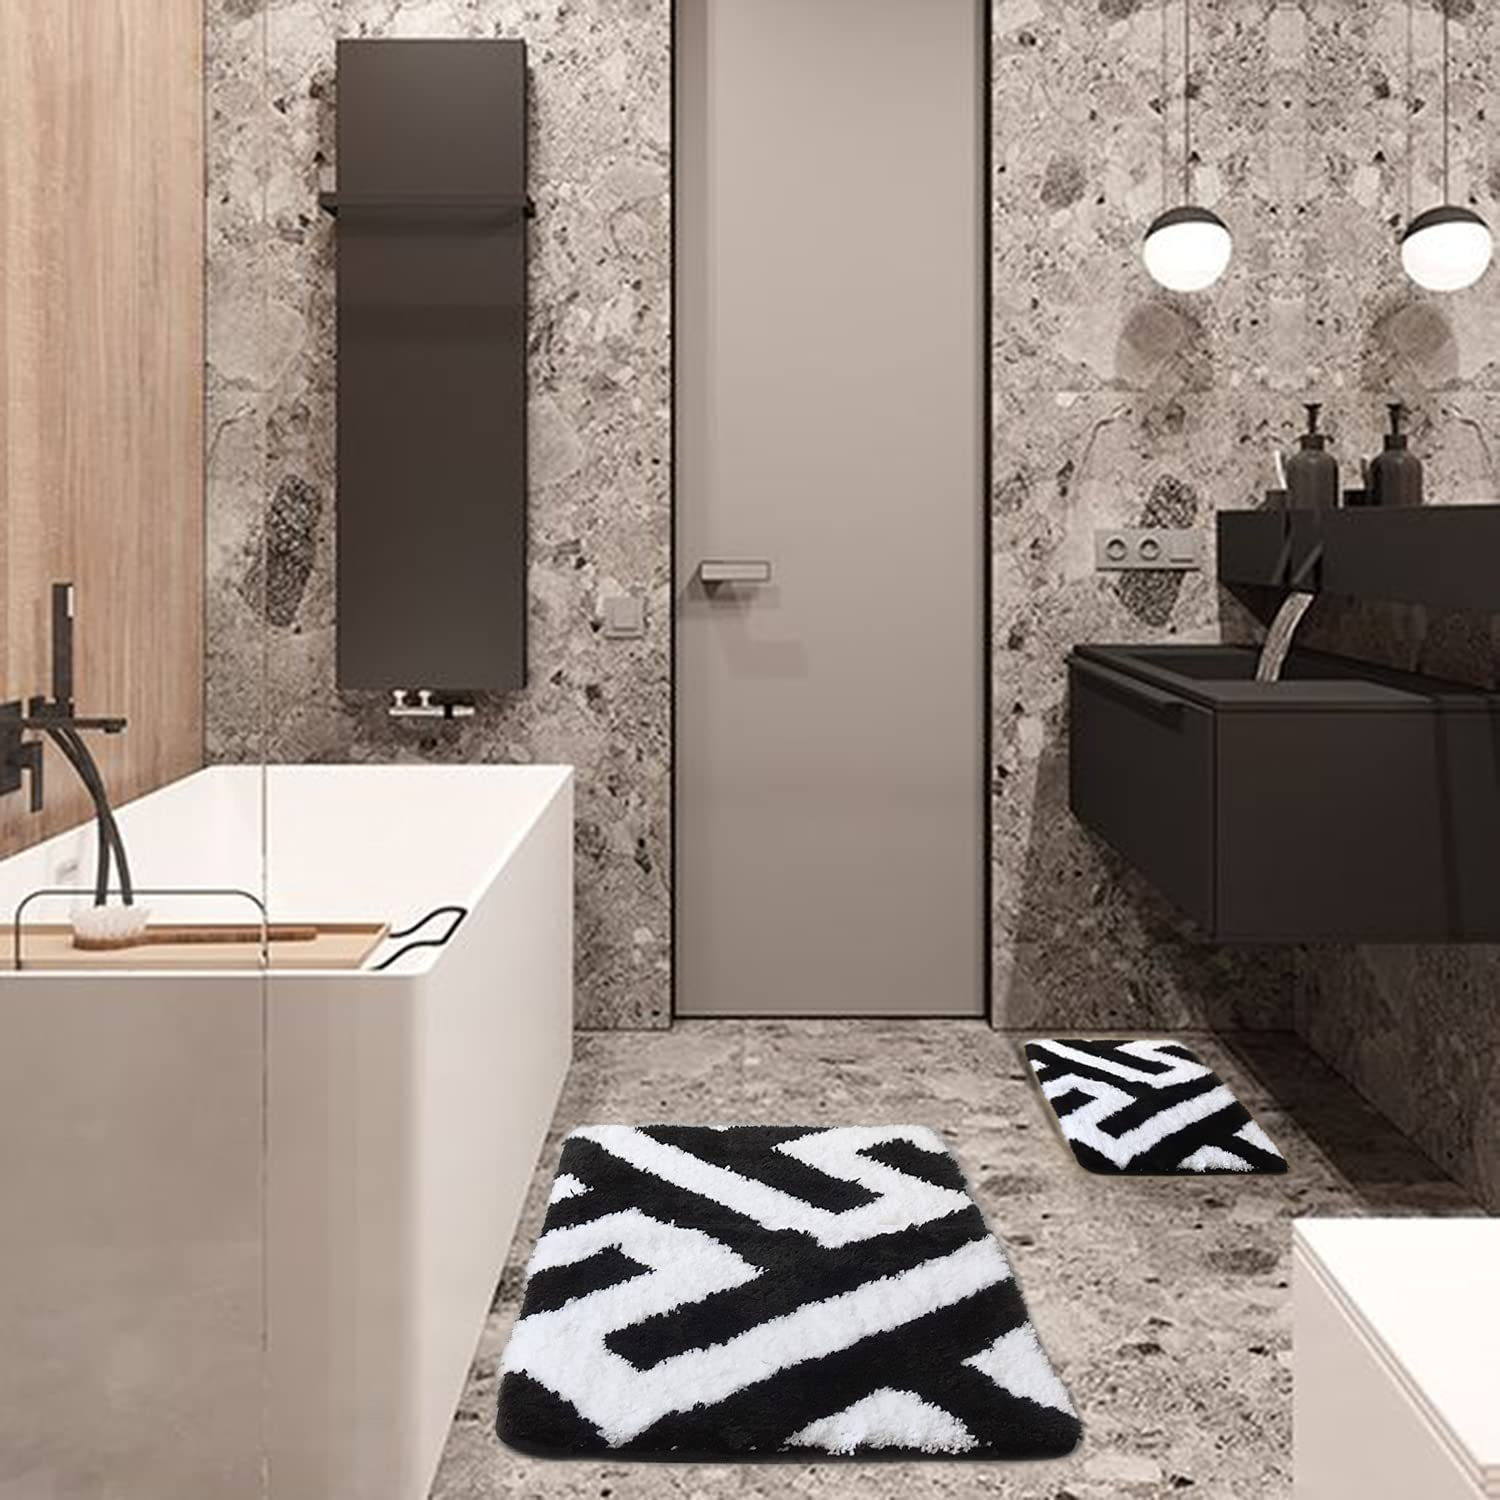 Black and White Bathroom Rugs New color Mats Non-Slip Special price 2 Sets Piece- Wa